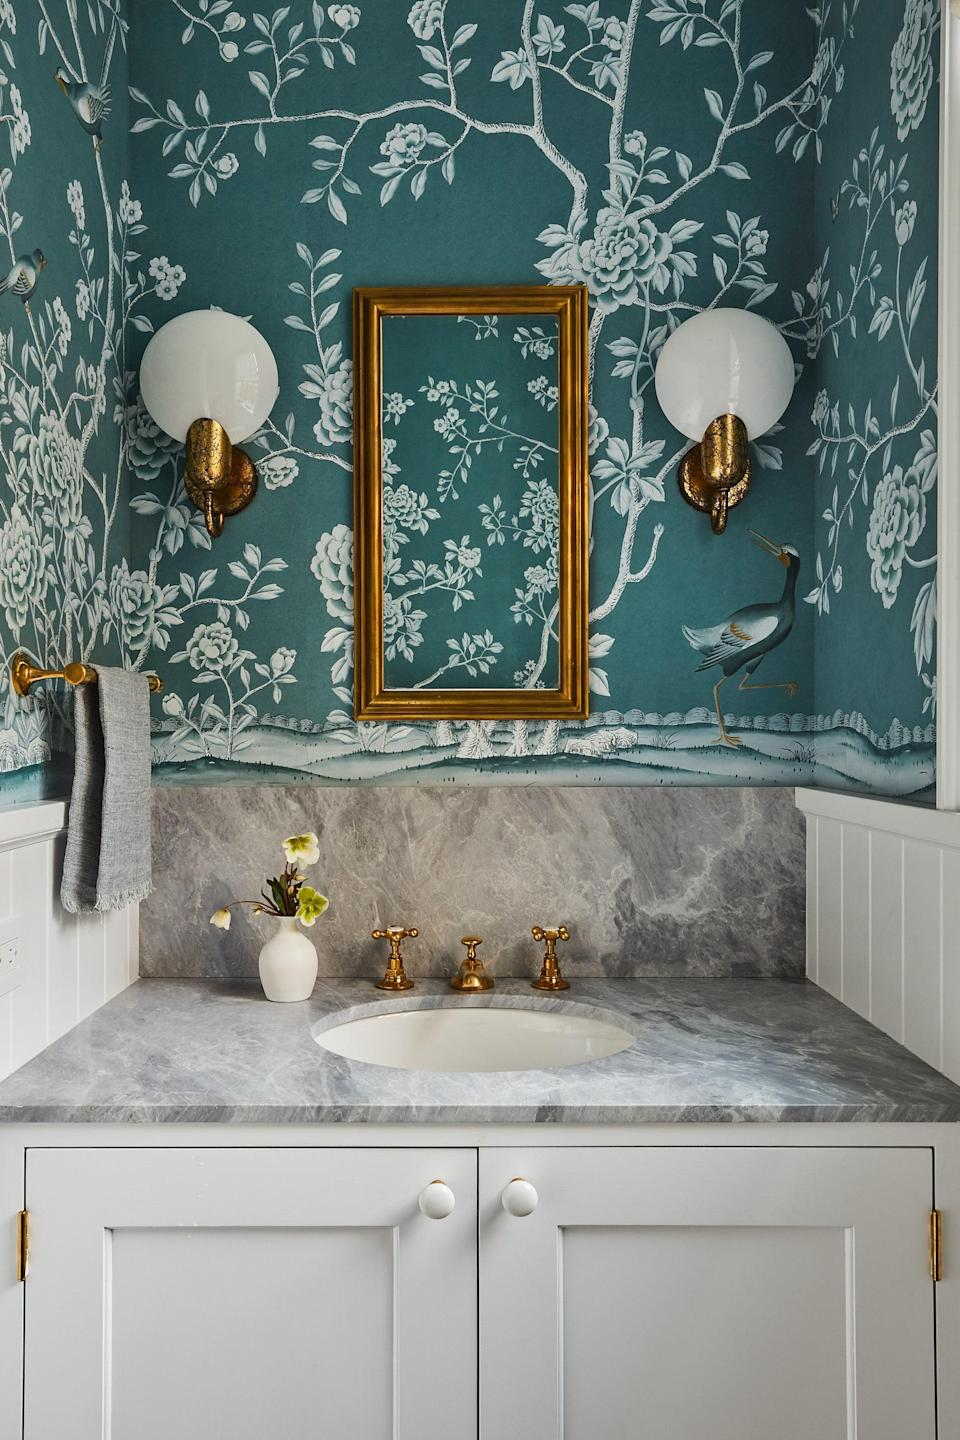 """""""I always feel like the powder room should be a little more fun,"""" says Kamel. Here, custom De Gournay wallpaper becomes a lively backdrop for Urban Electric Company sconces and an Ann-Morris mirror."""